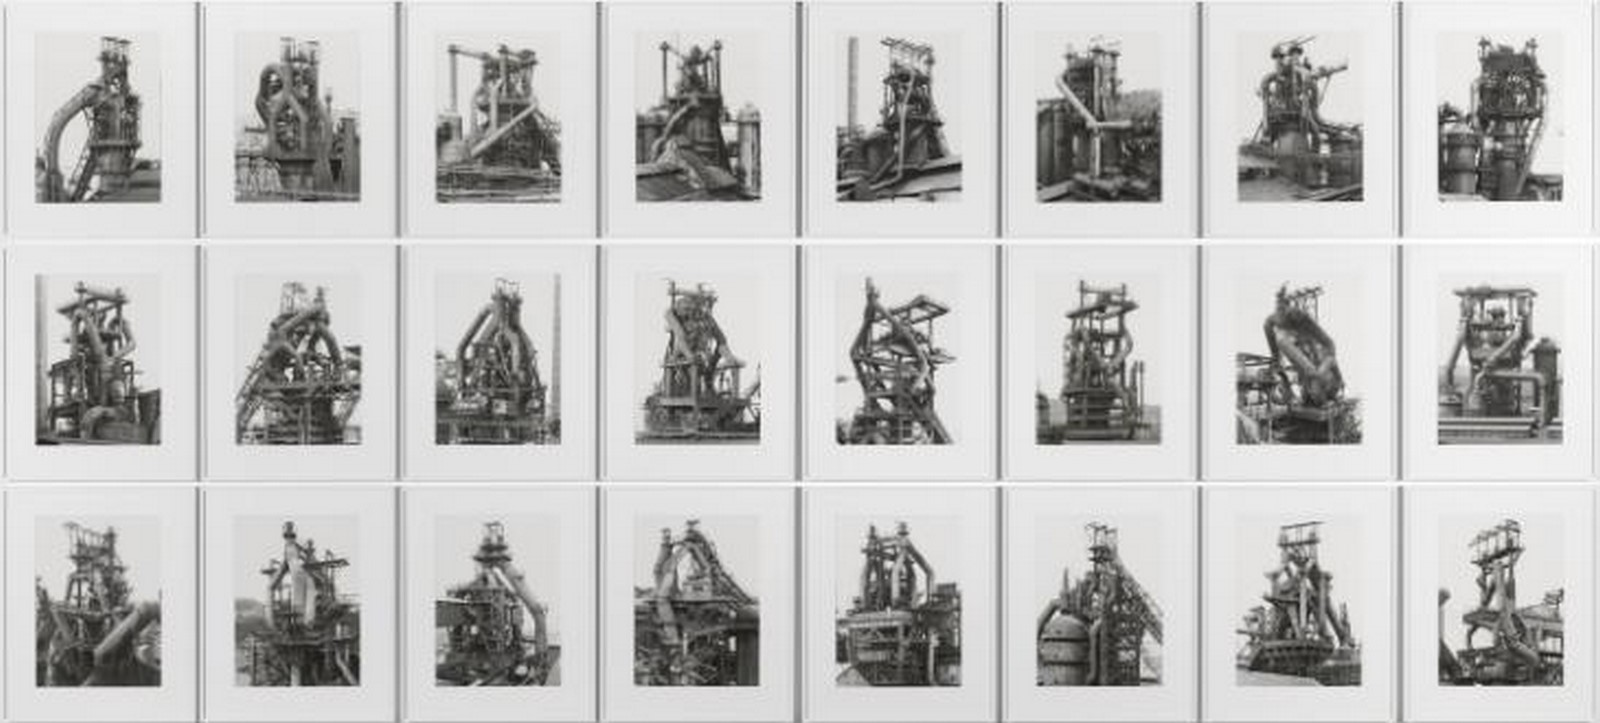 A brief history of Architectural Photography - Sheet45